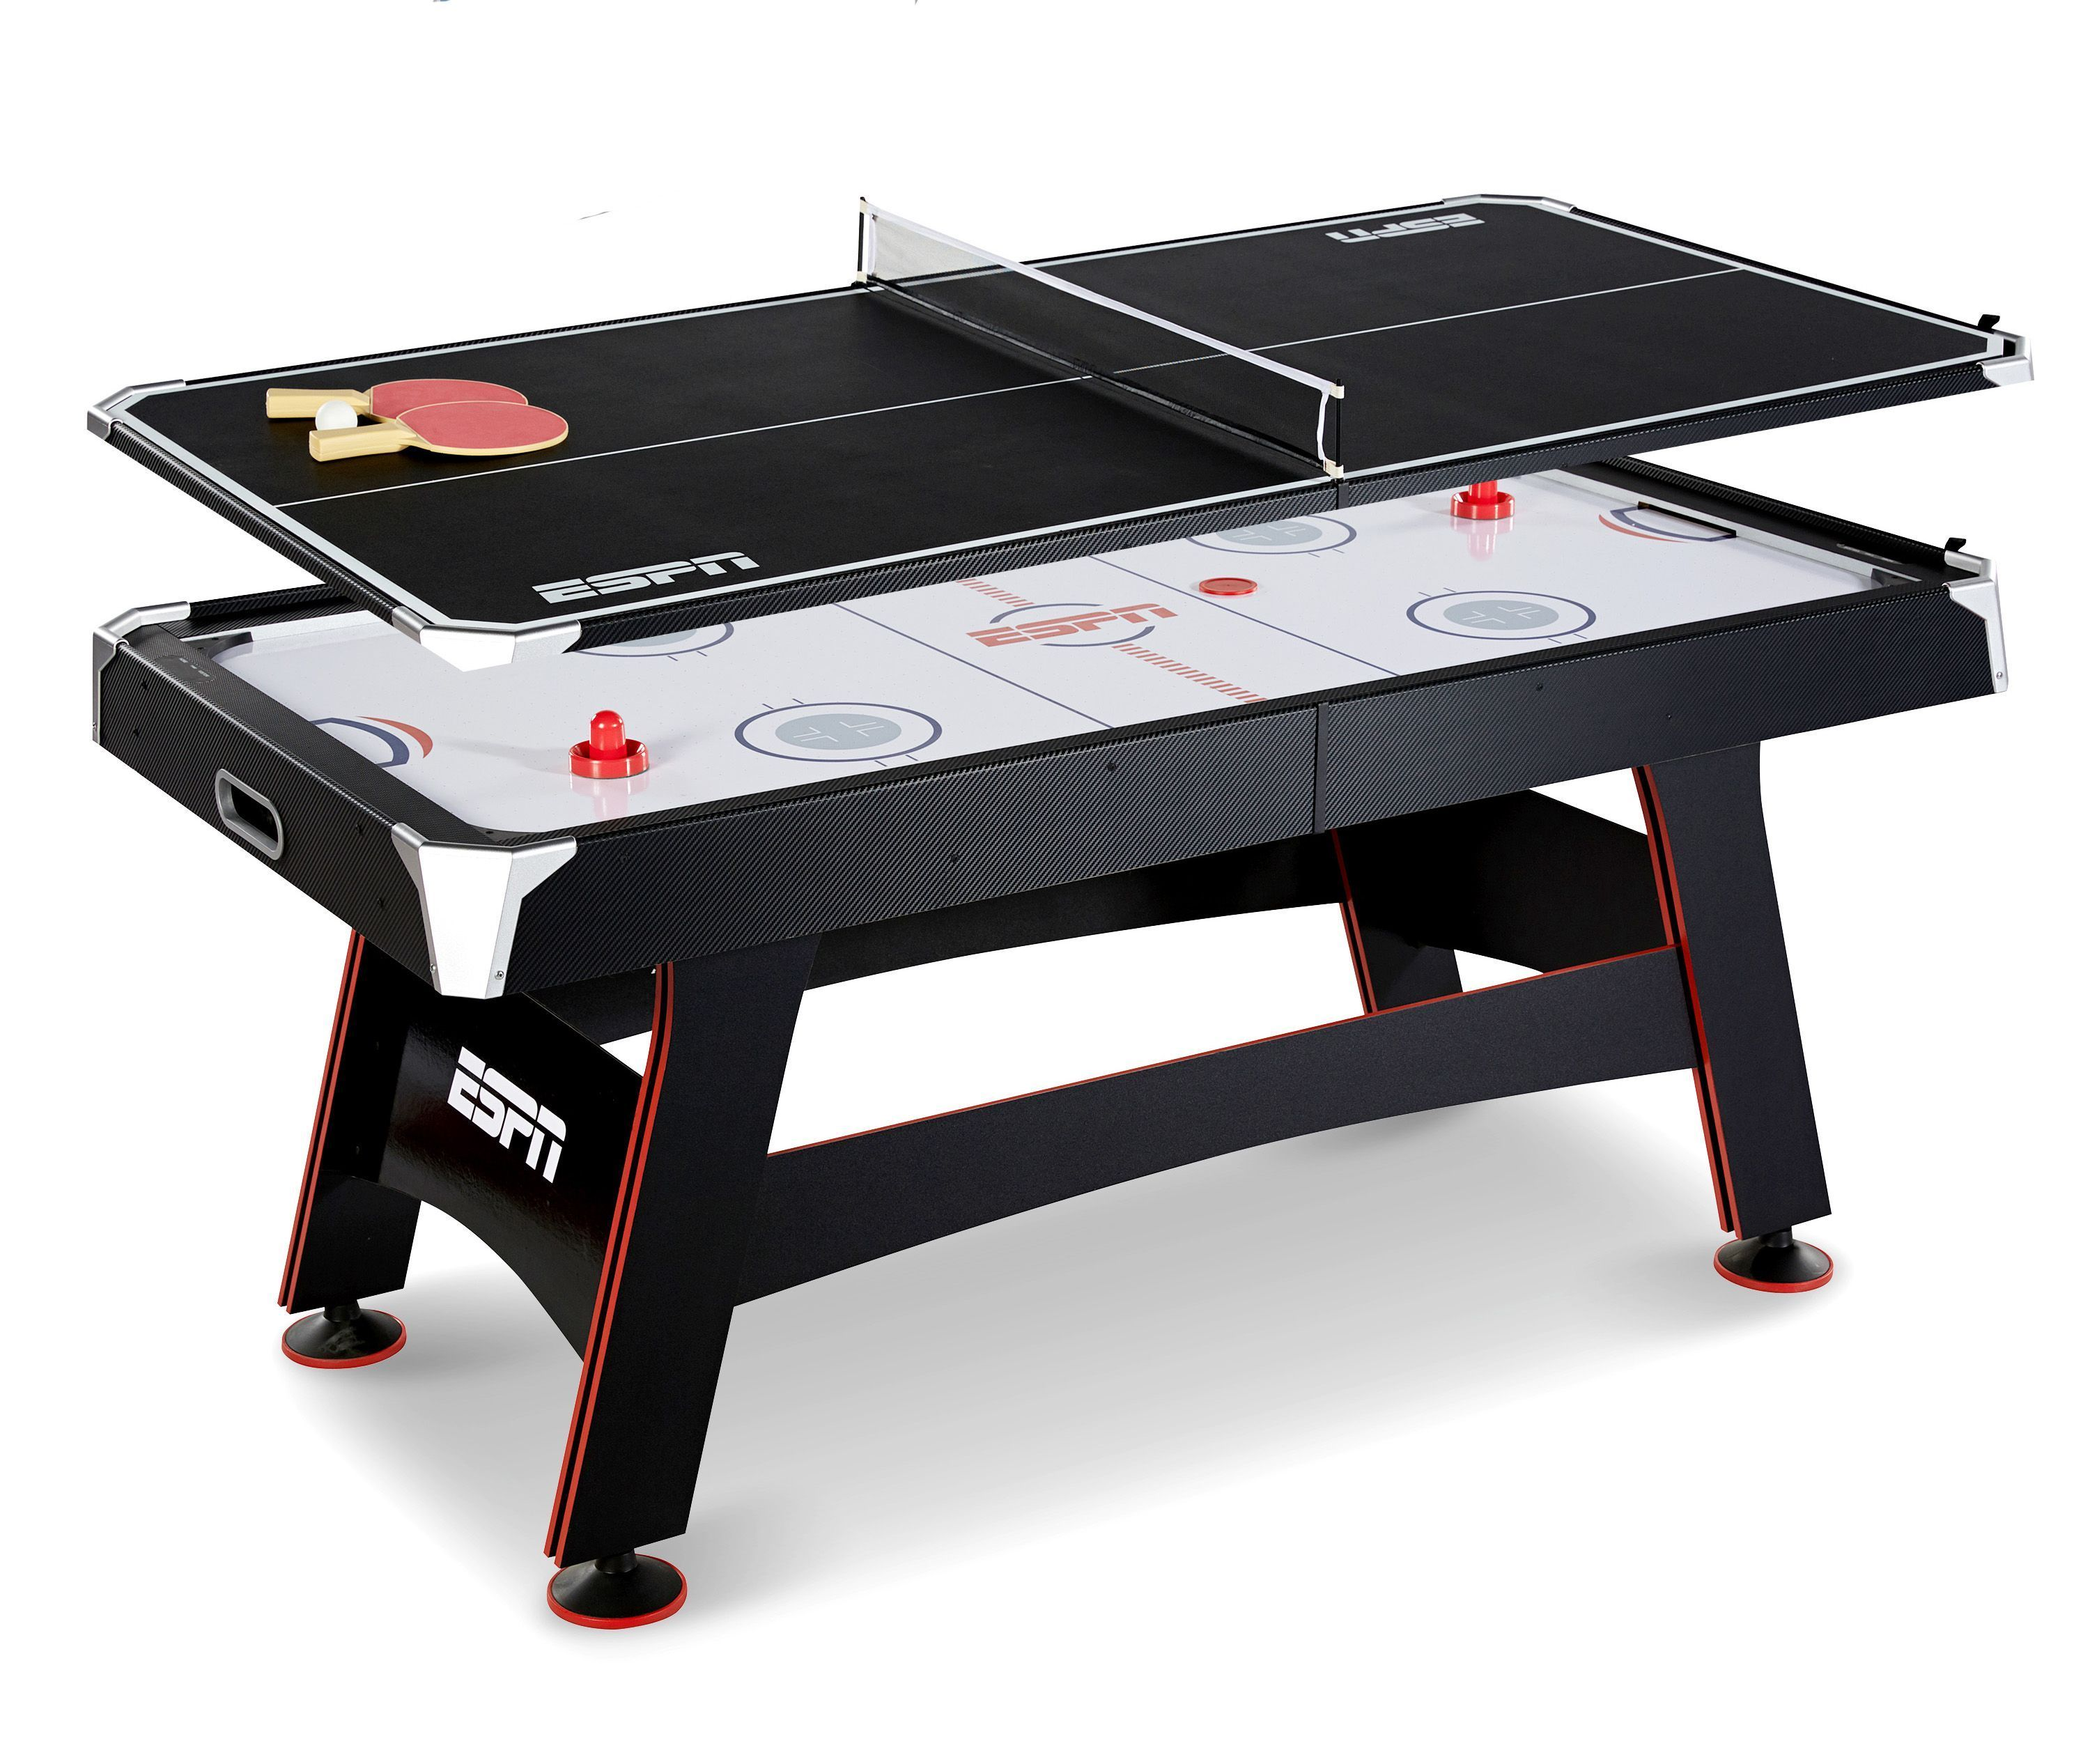 Espn 72 air powered hockey table 89 at walmart ben for 10 in 1 game table toys r us